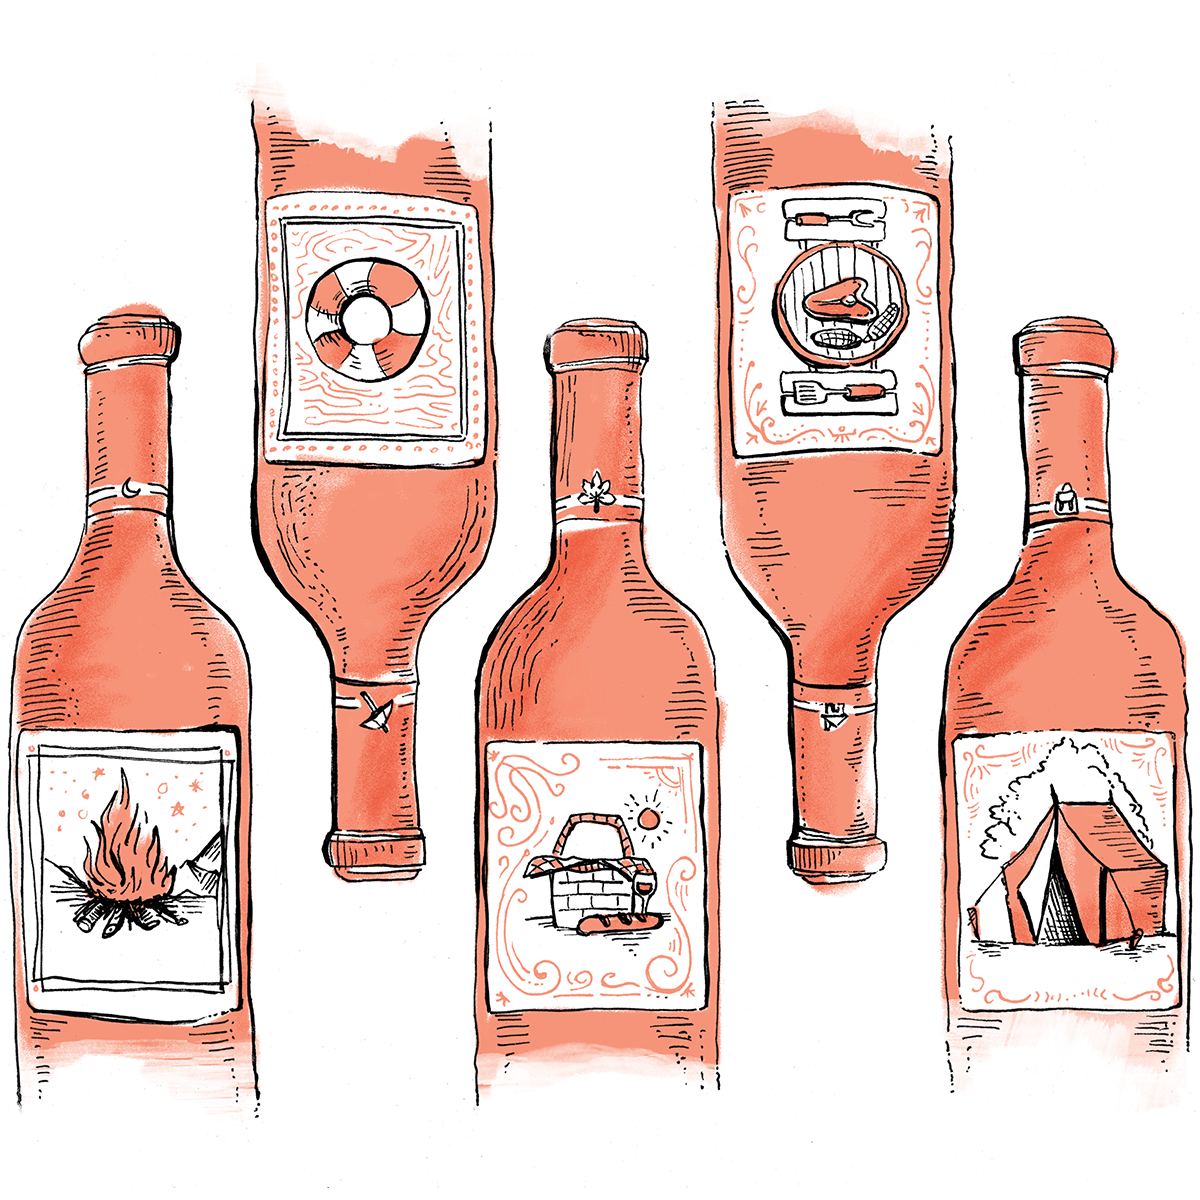 New York Magazine, Summer Wine Pairings - Illustrations for New York Magazine's article with Sweetbitter's Stephanie Danler on five wines that pair well with your favorite summer activities.View Project →